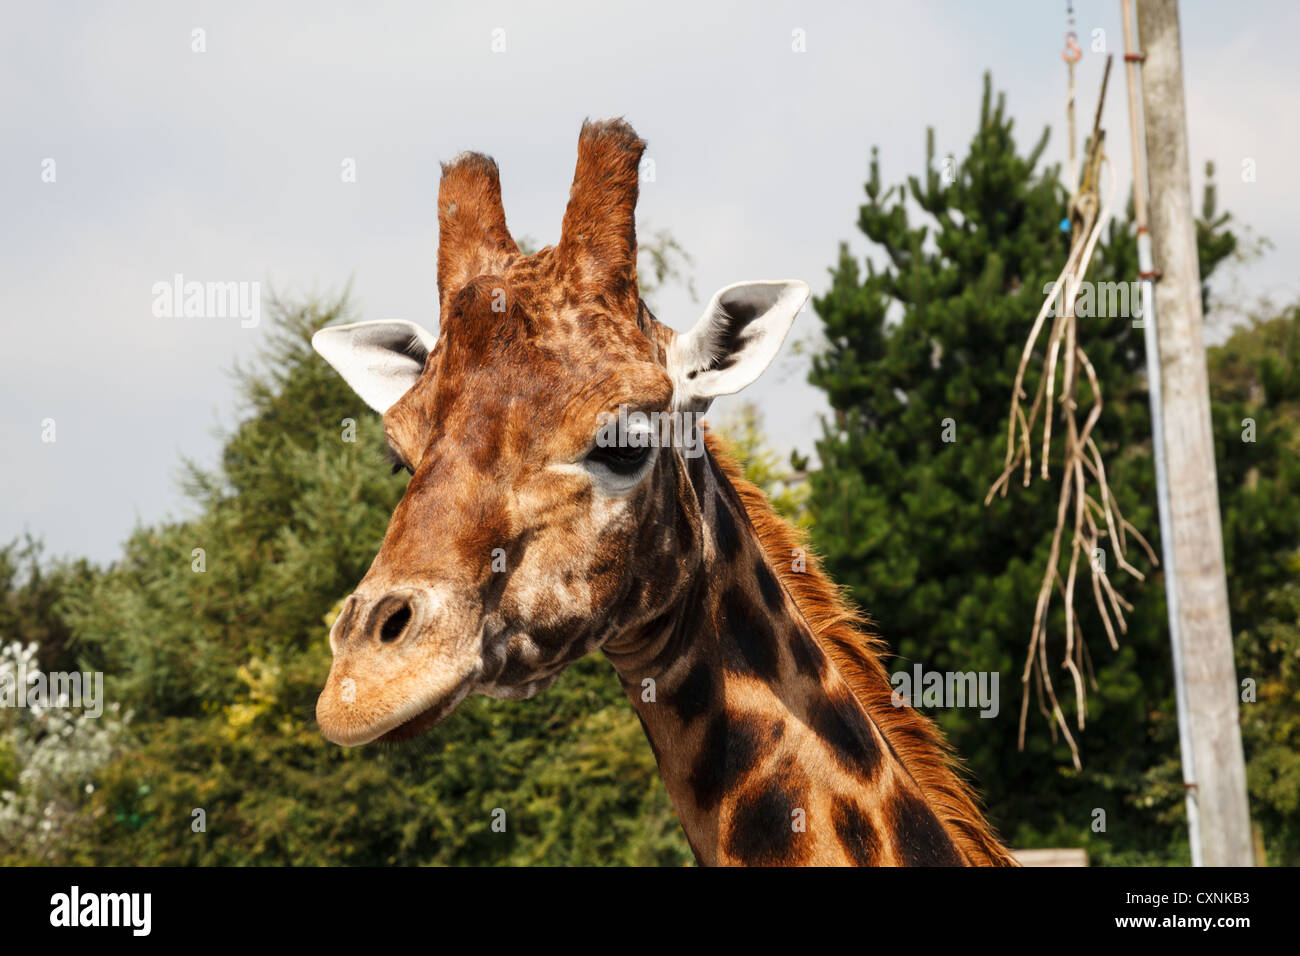 giraffe at folly farm zoo stock photo royalty free image